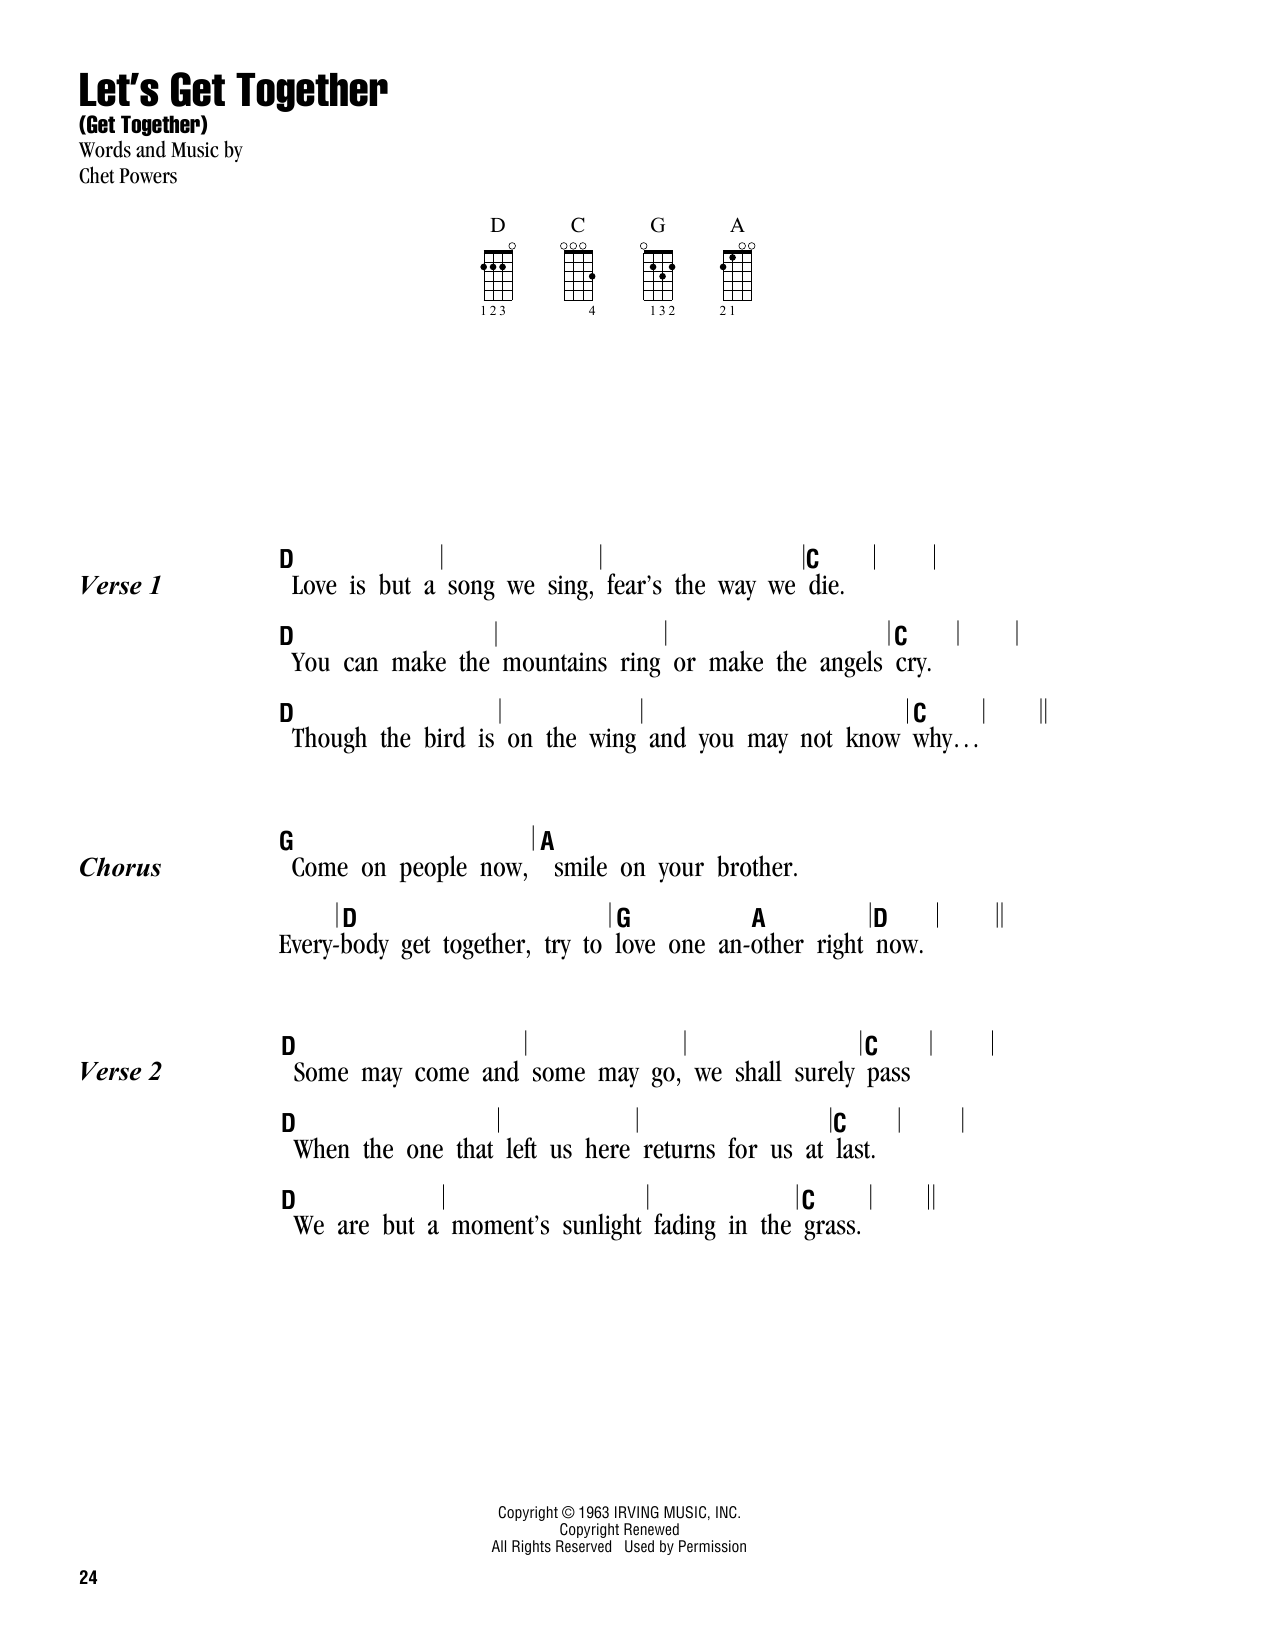 Let's Get Together (Get Together) Sheet Music